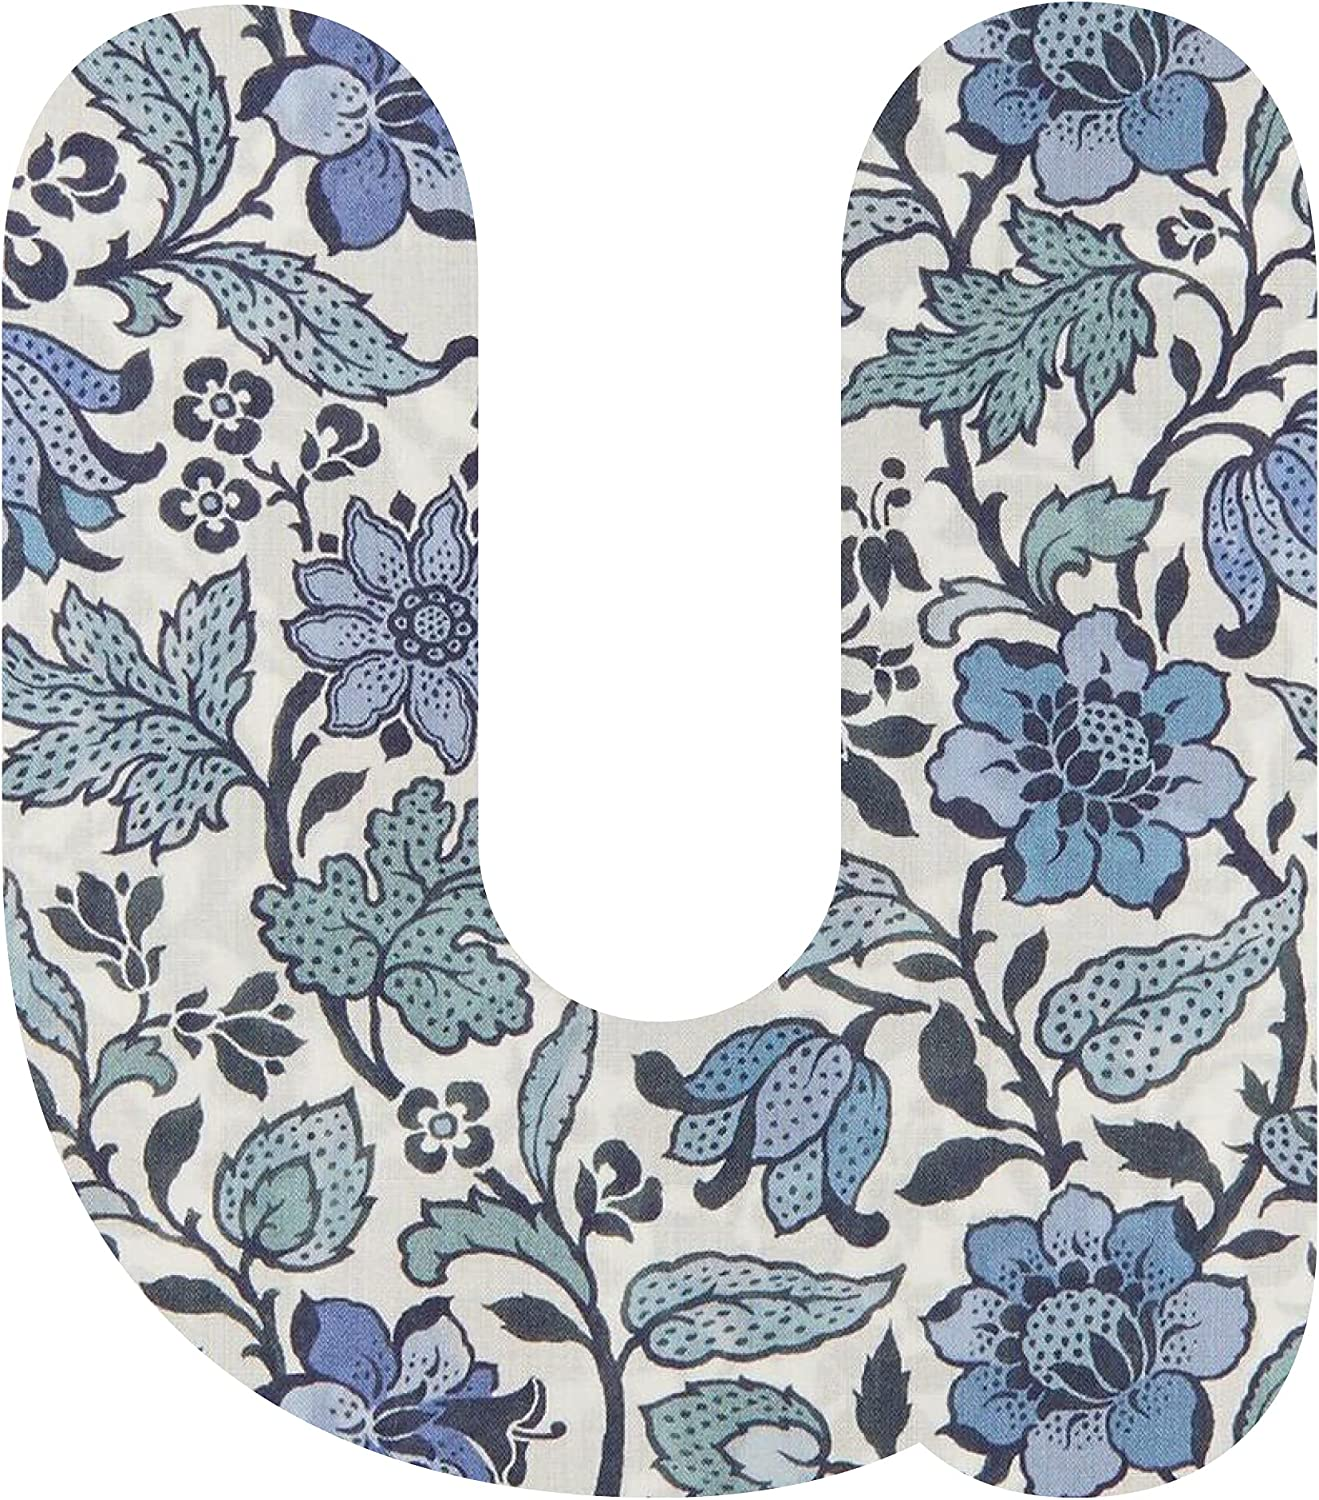 Sew Perfect Liberty Emery Walker A 2 Opening large release sale u Lett - Genuine Applique Inch 2